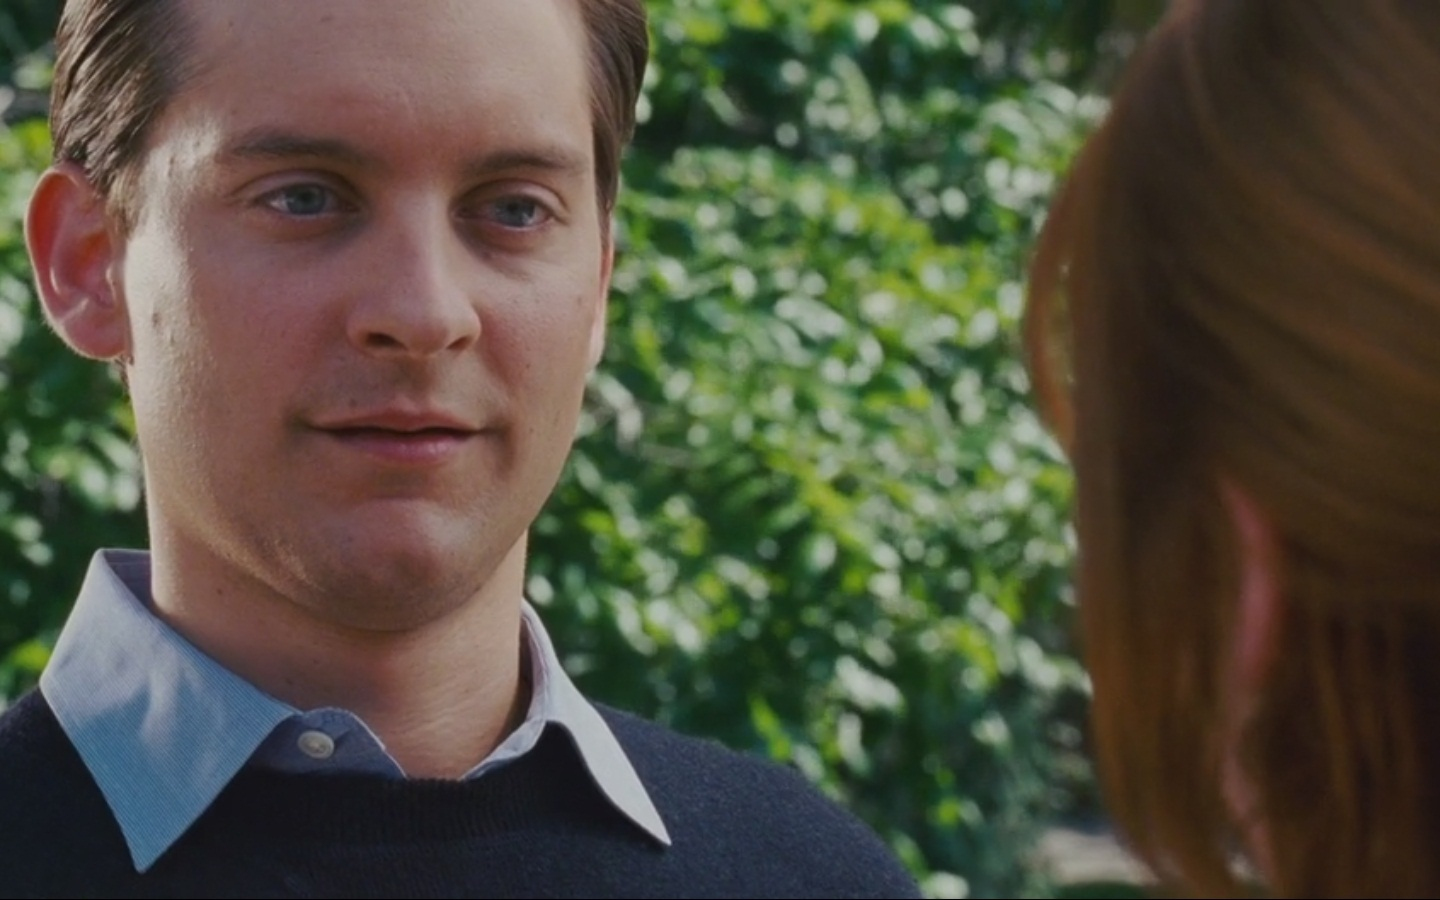 Tobey's wallpaper - Tobey Maguire Wallpaper (26349675 ... Tobey Maguire 2015